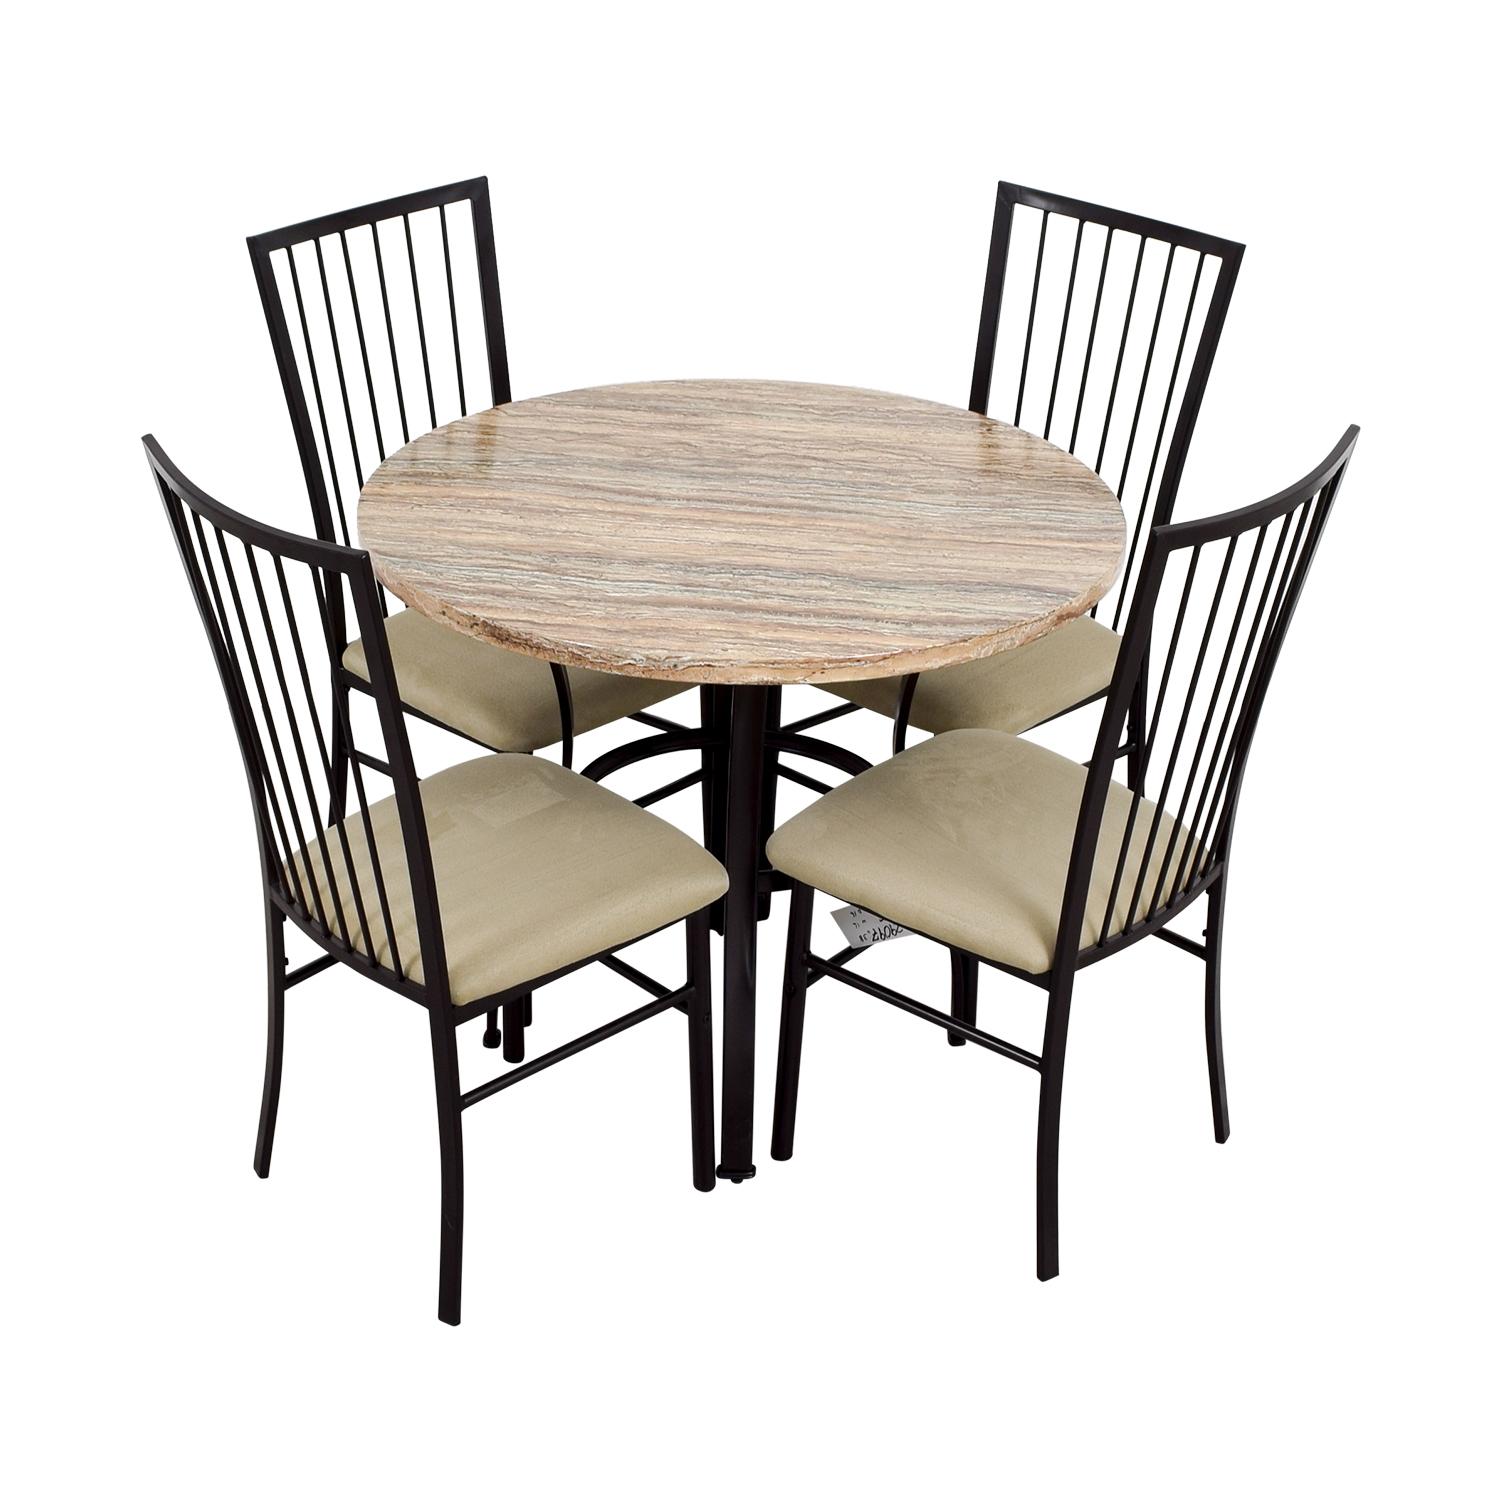 80% OFF - Wayfair Wayfair Stone Dining Table Set / Tables